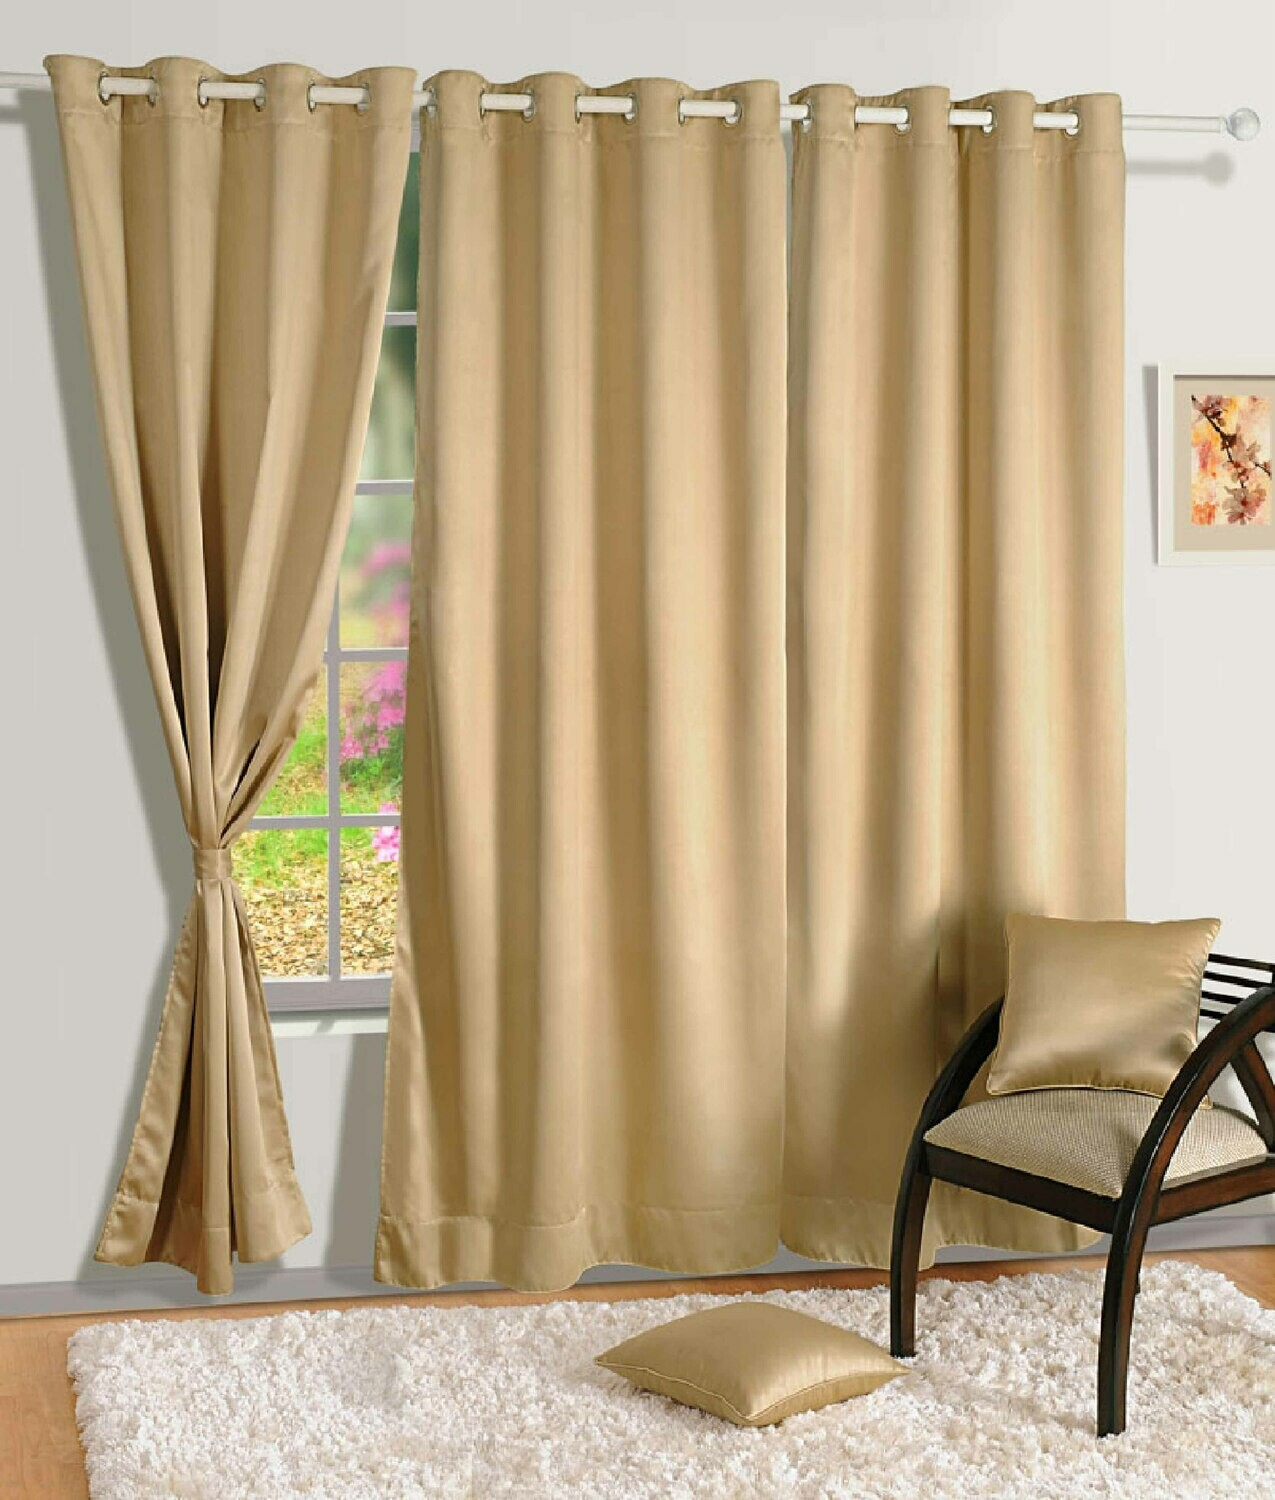 Swayam Beige Colour Solid Blackout Eyelet Curtain for Door